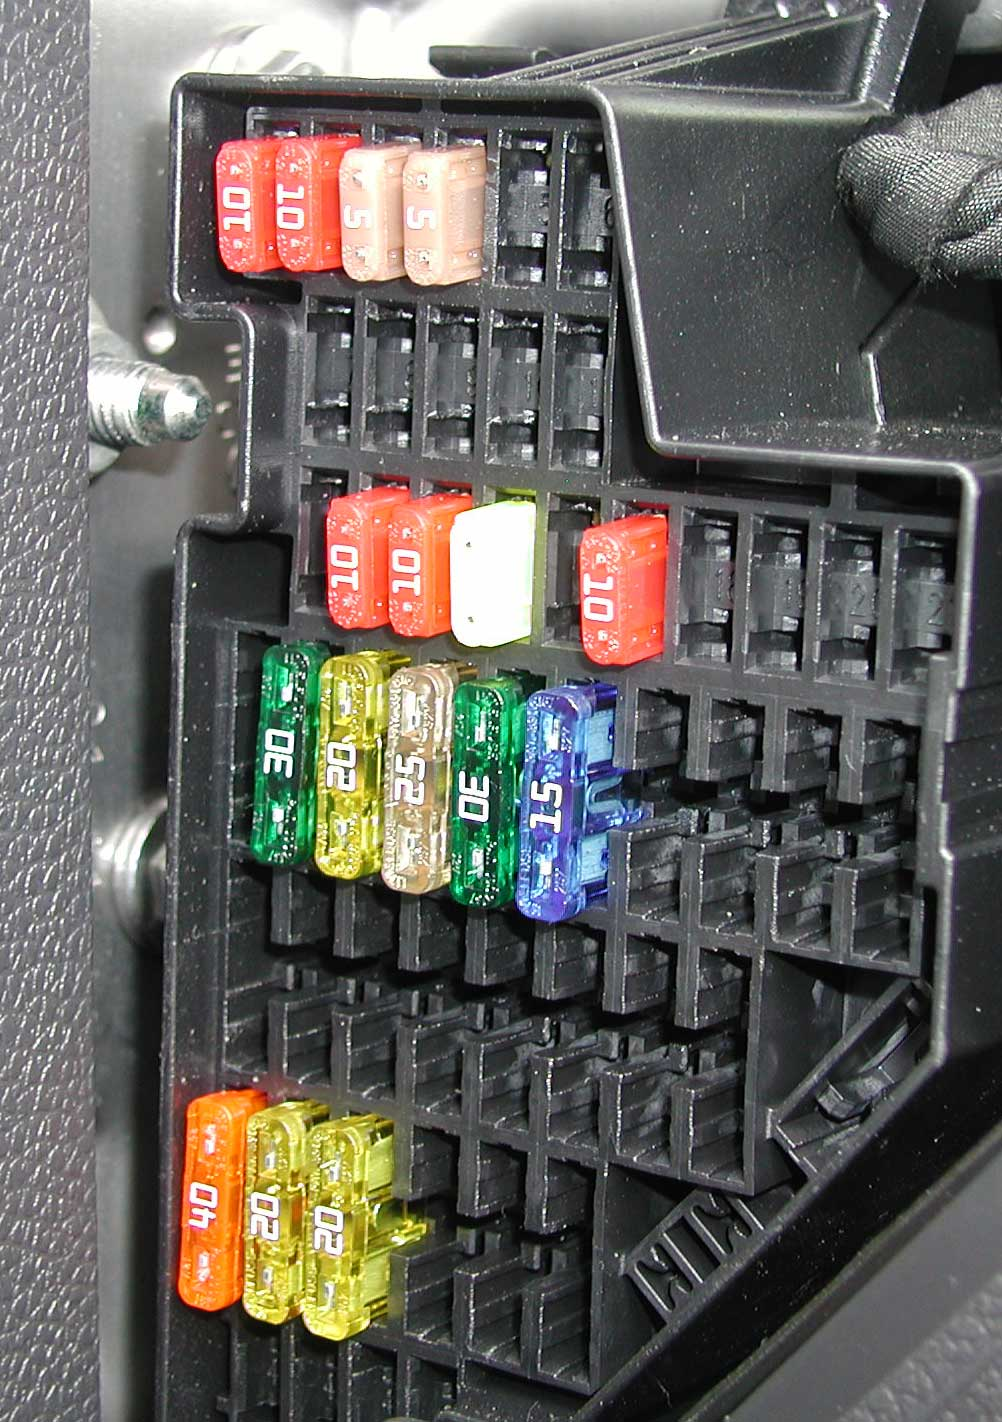 fuses2 2011 golf tdi fuse box (picture please!!!) tdiclub forums 2010 vw jetta fuse box diagram at bayanpartner.co